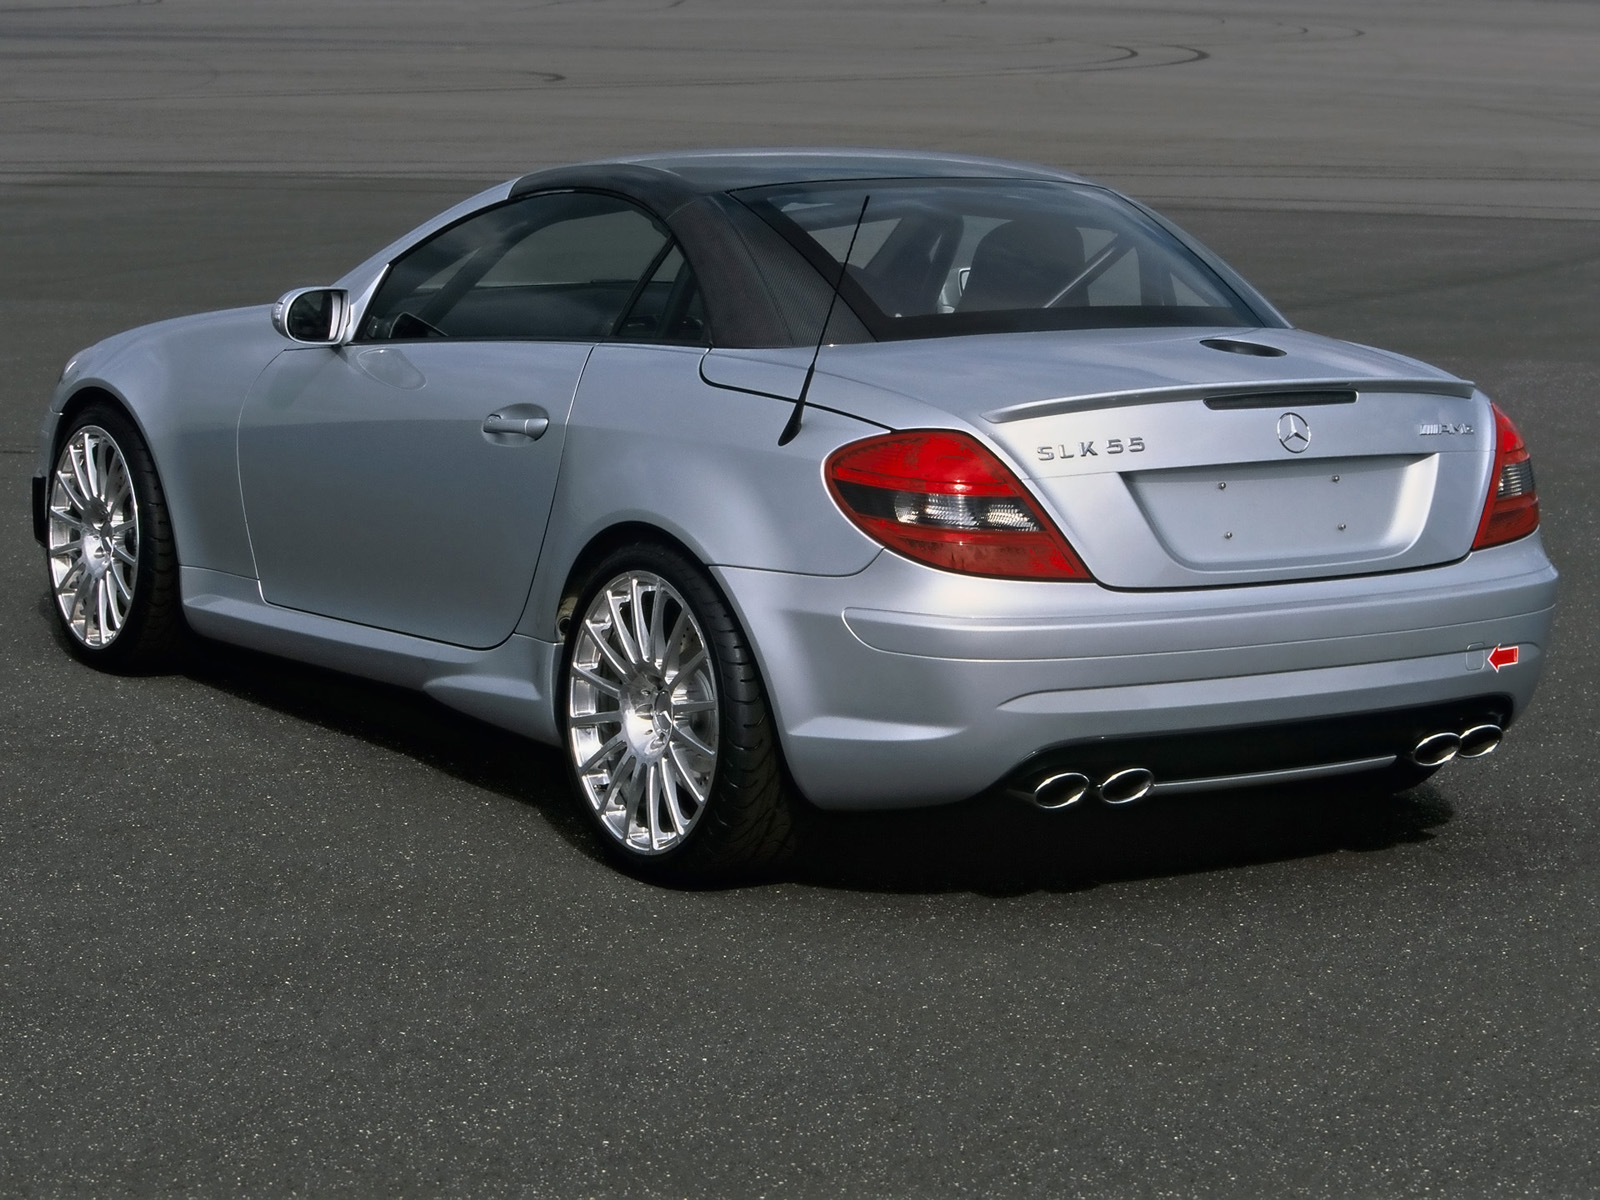 Mercedes-Benz SLK 55 AMG photo 14